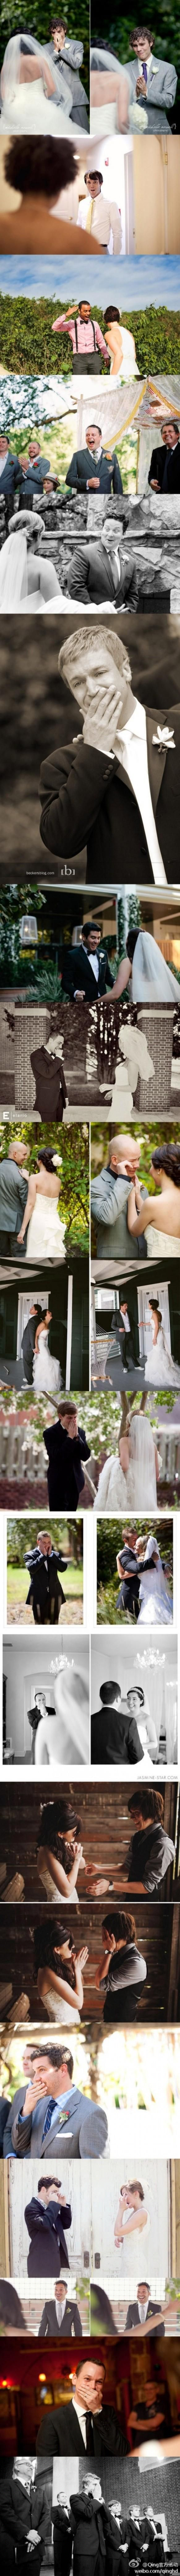 """My favorite part of the wedding is seeing the groom's face when he first sees his bride.."""